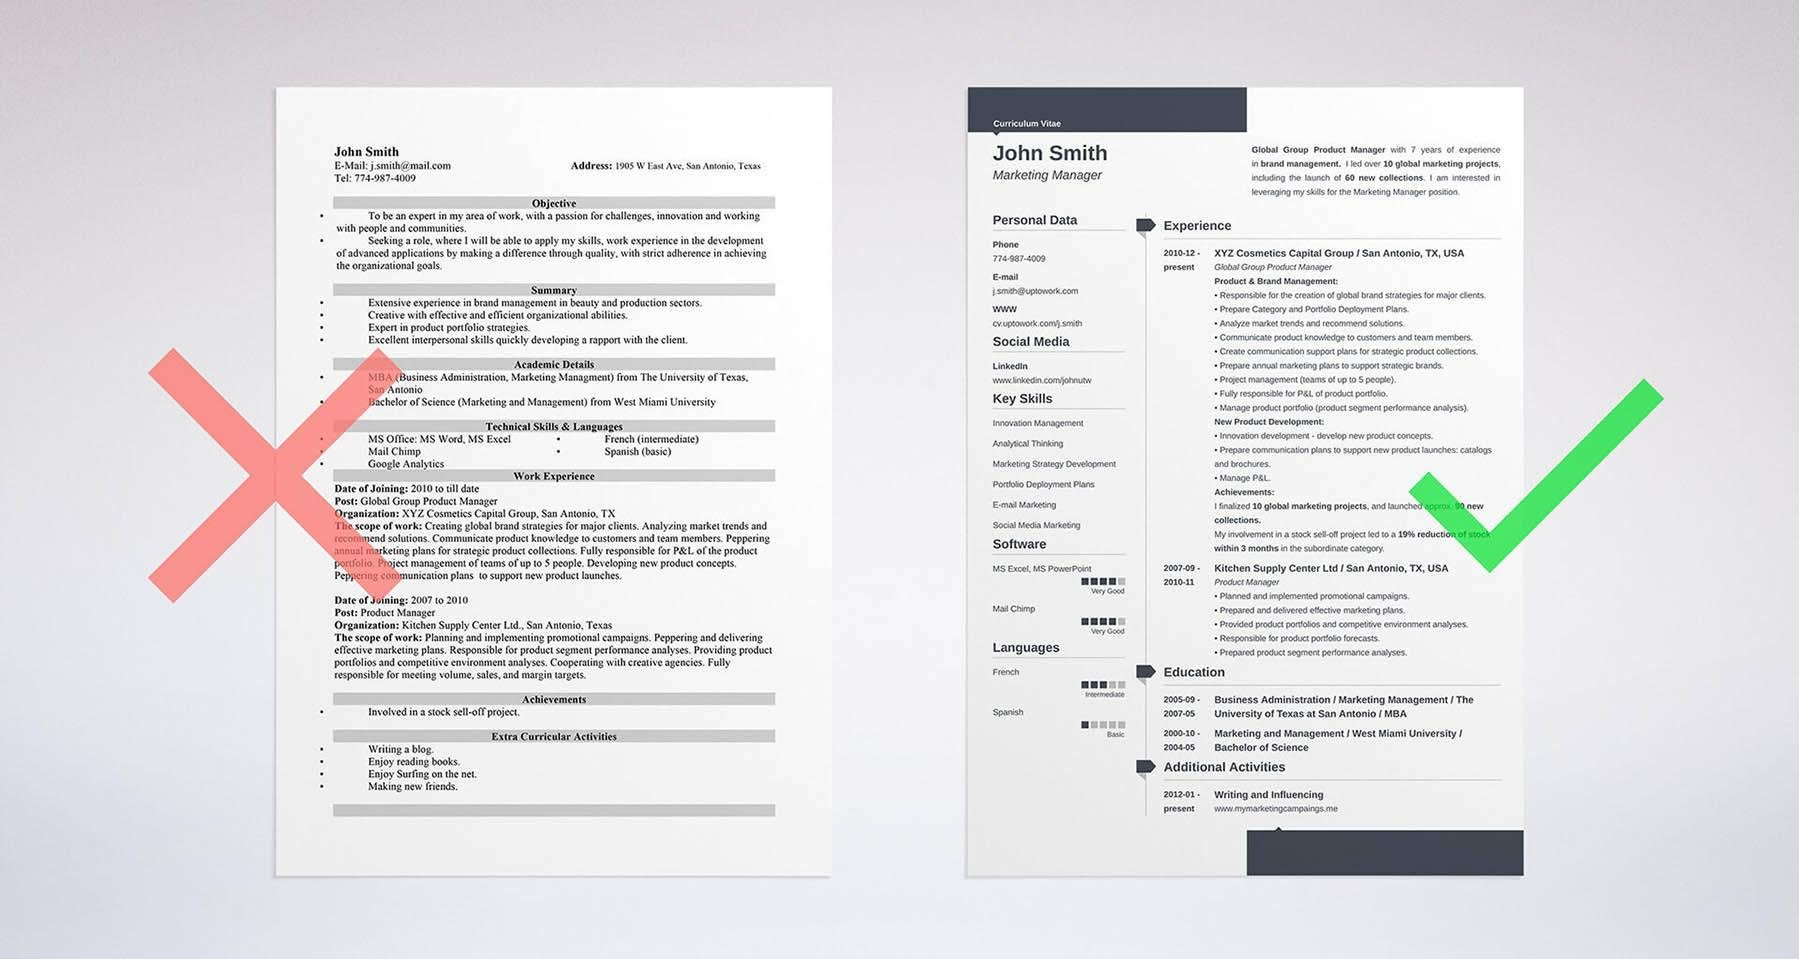 heres an example of a template from our resume builder that properly showcases skills on a resume